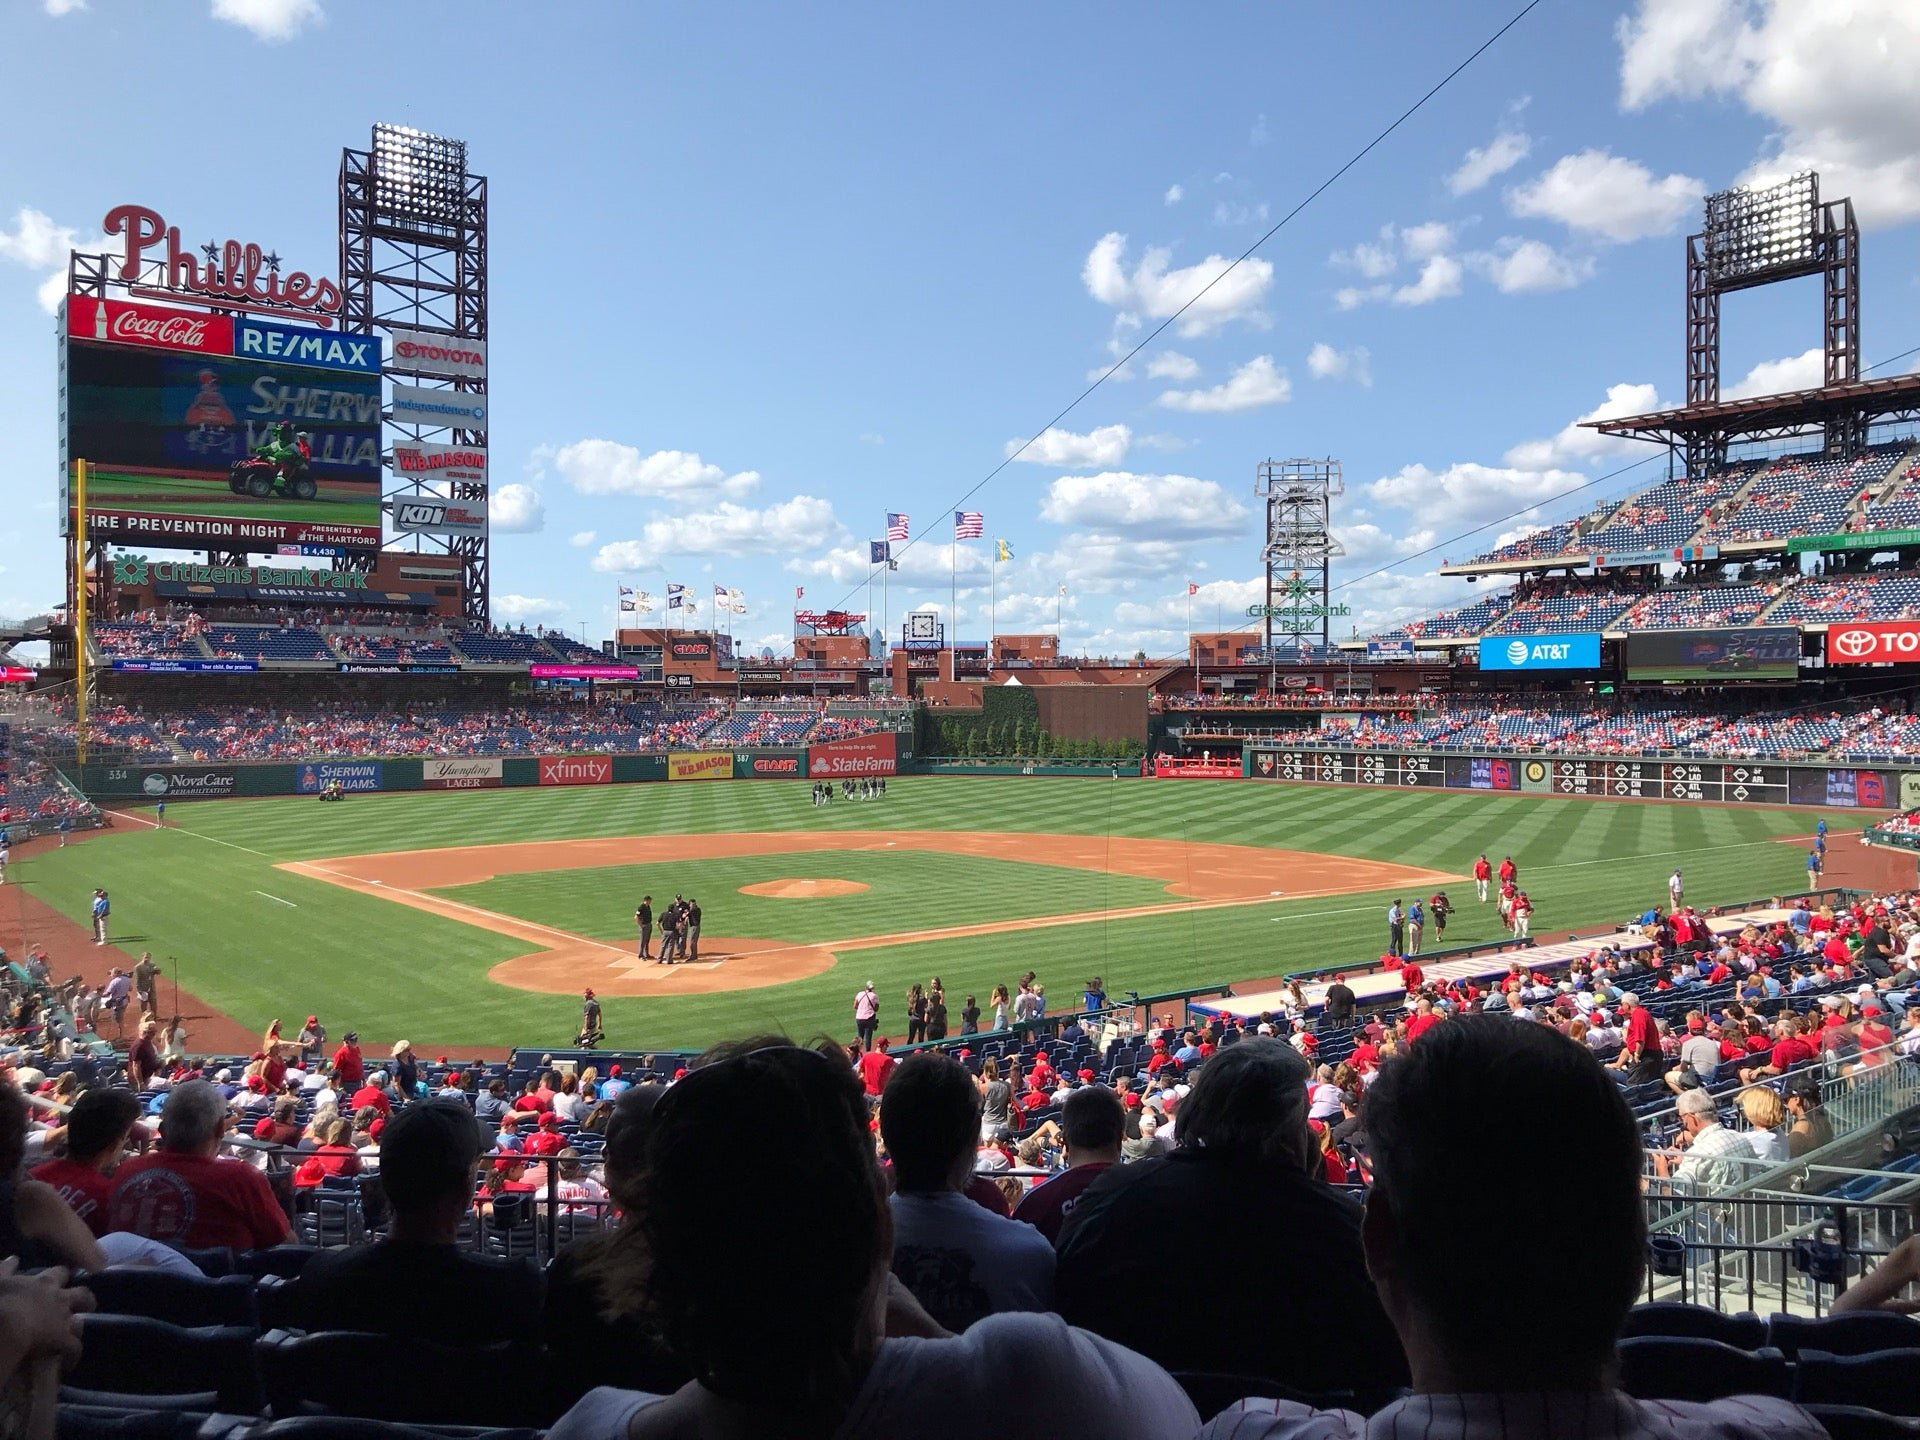 phillies shaded seats home plate